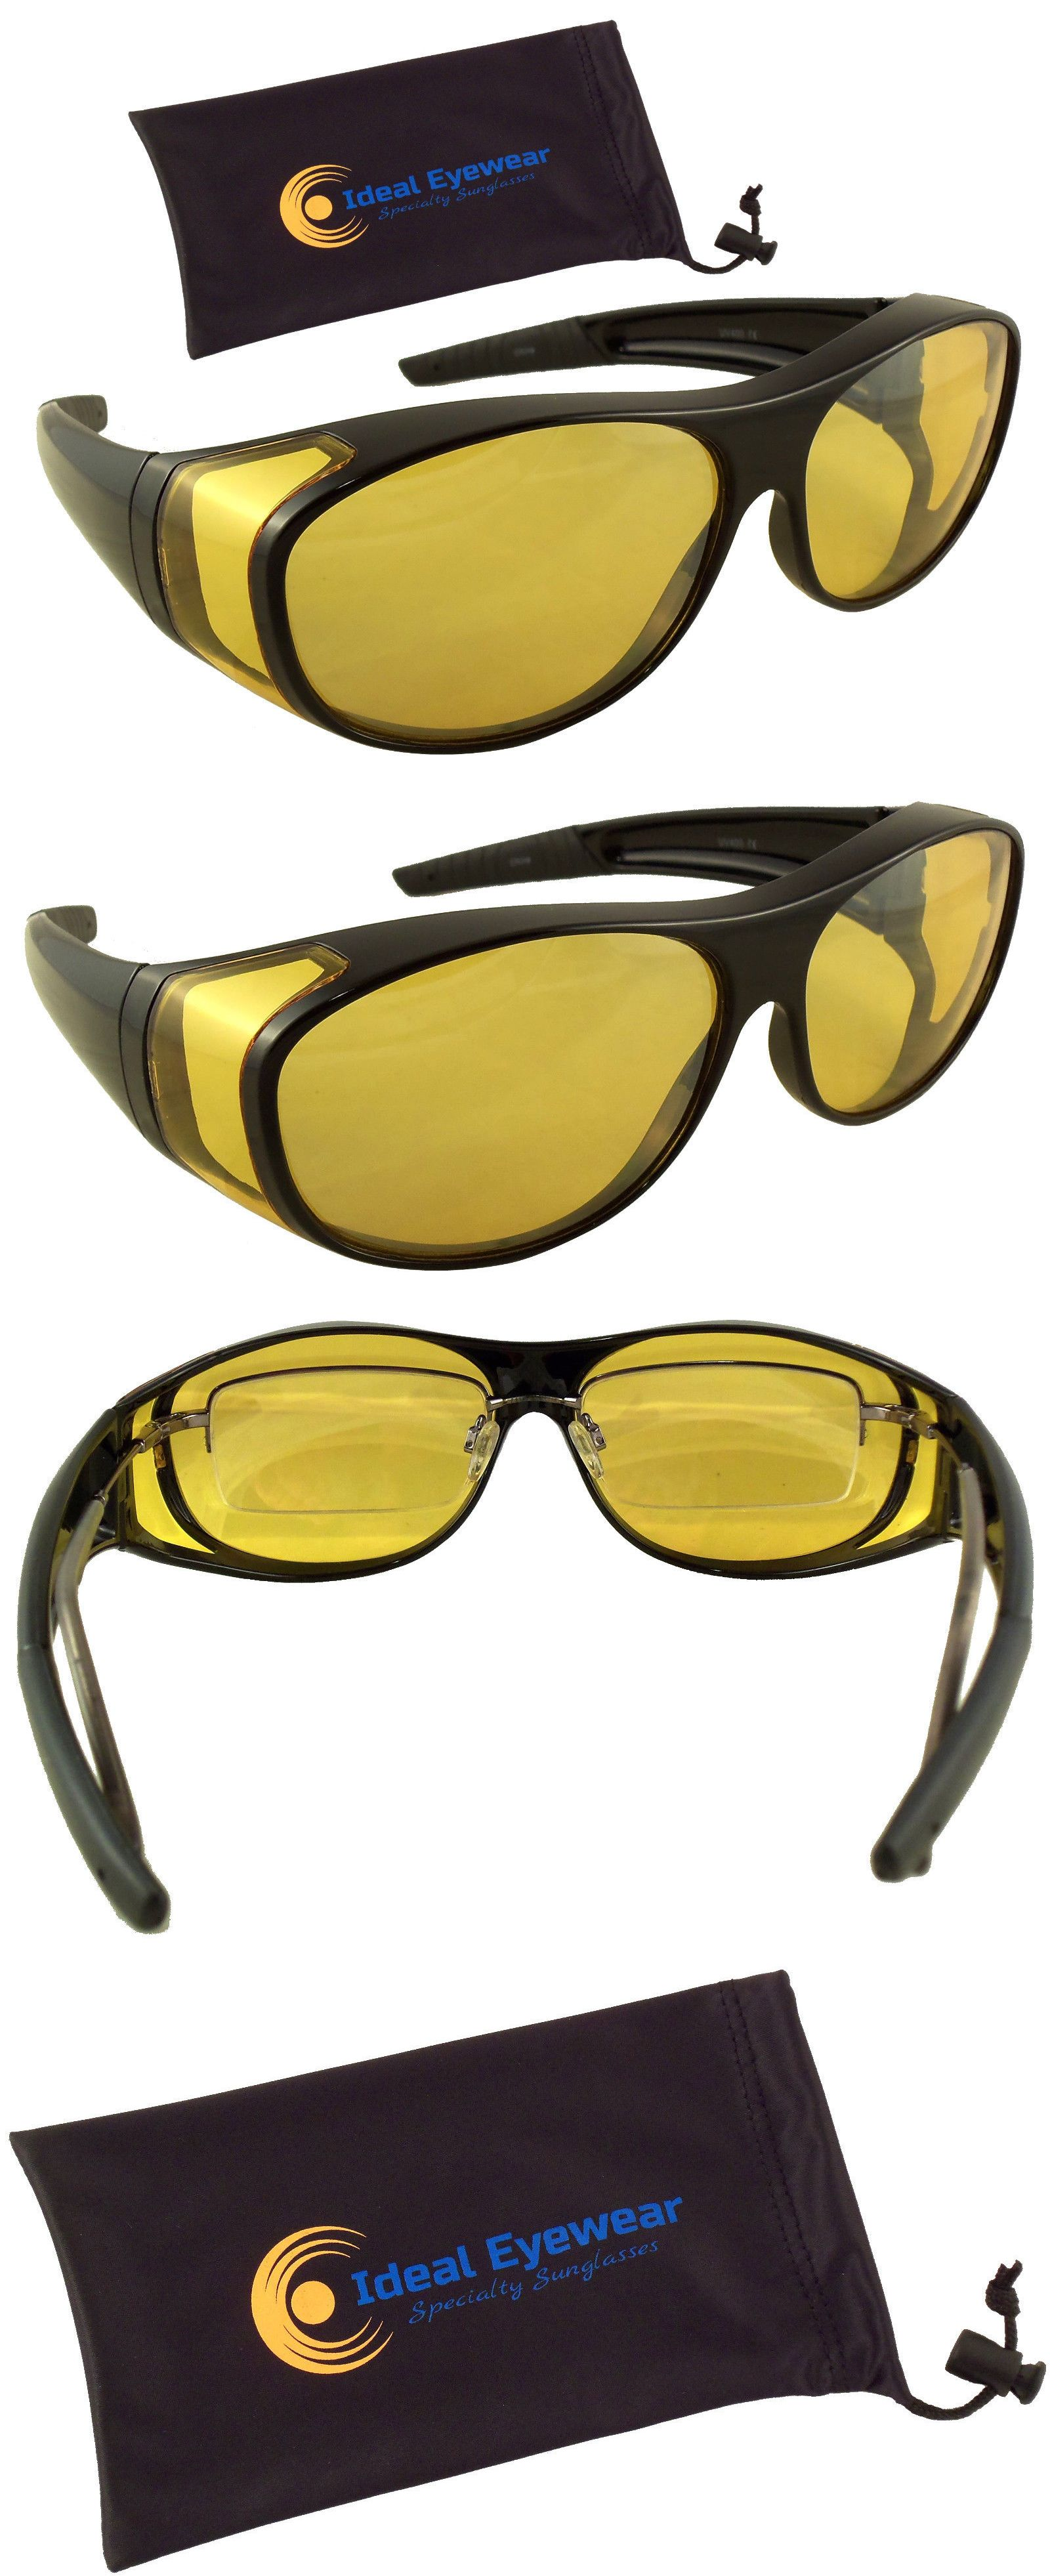 d0a883aba6bb Sunglasses and Sunglasses Accessories 179247: Night Driving Glasses Yellow  Lens Wear Over Cover Anti Glare Fit Over Sunglasses -> BUY IT NOW ONLY:  $16.12 on ...